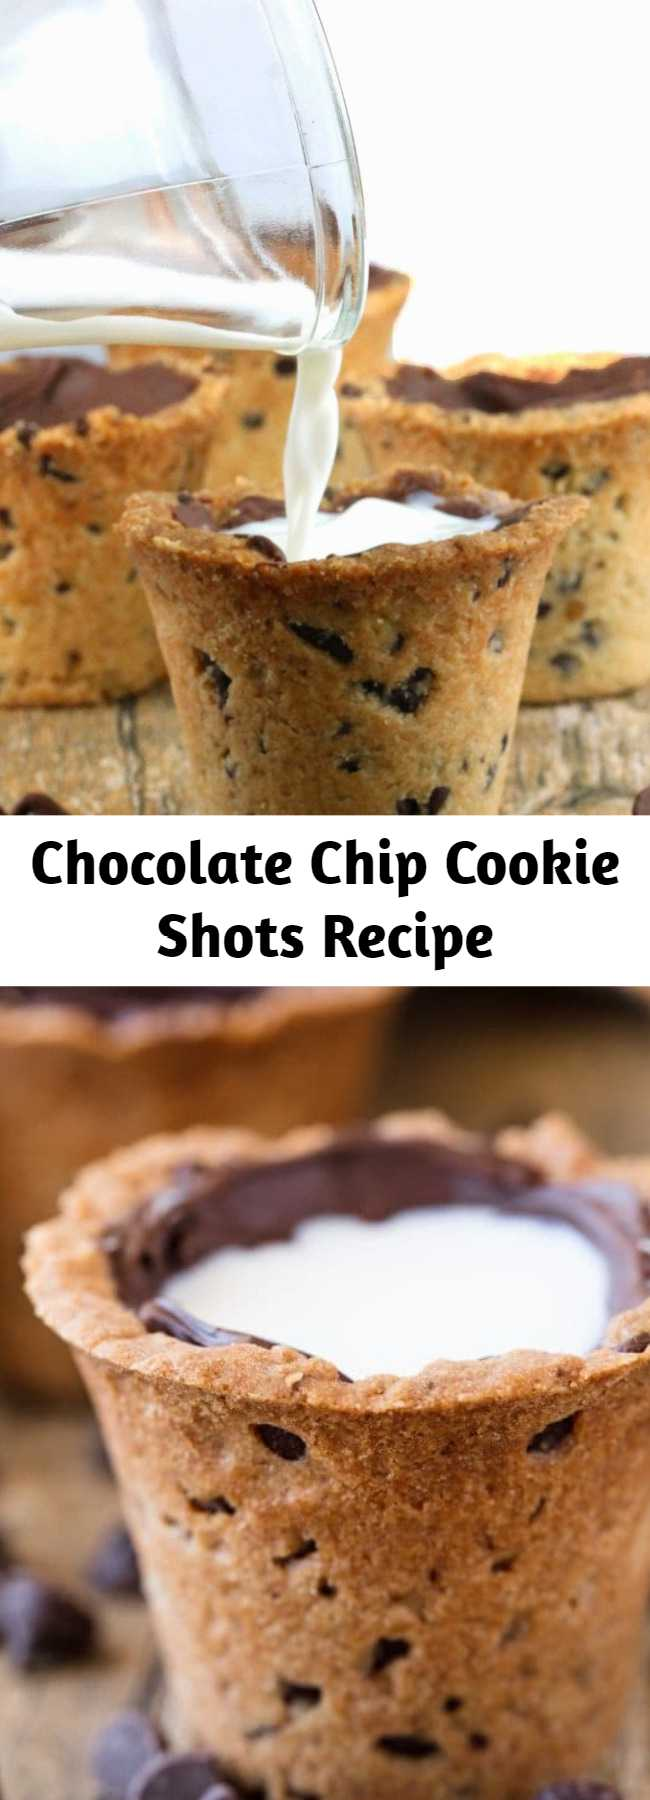 Chocolate Chip Cookie Shots Recipe - Drink your milk and cookies straight from a Chocolate Chip Cookie Shot glass! This fun dessert makes for a great party food. So much fun!